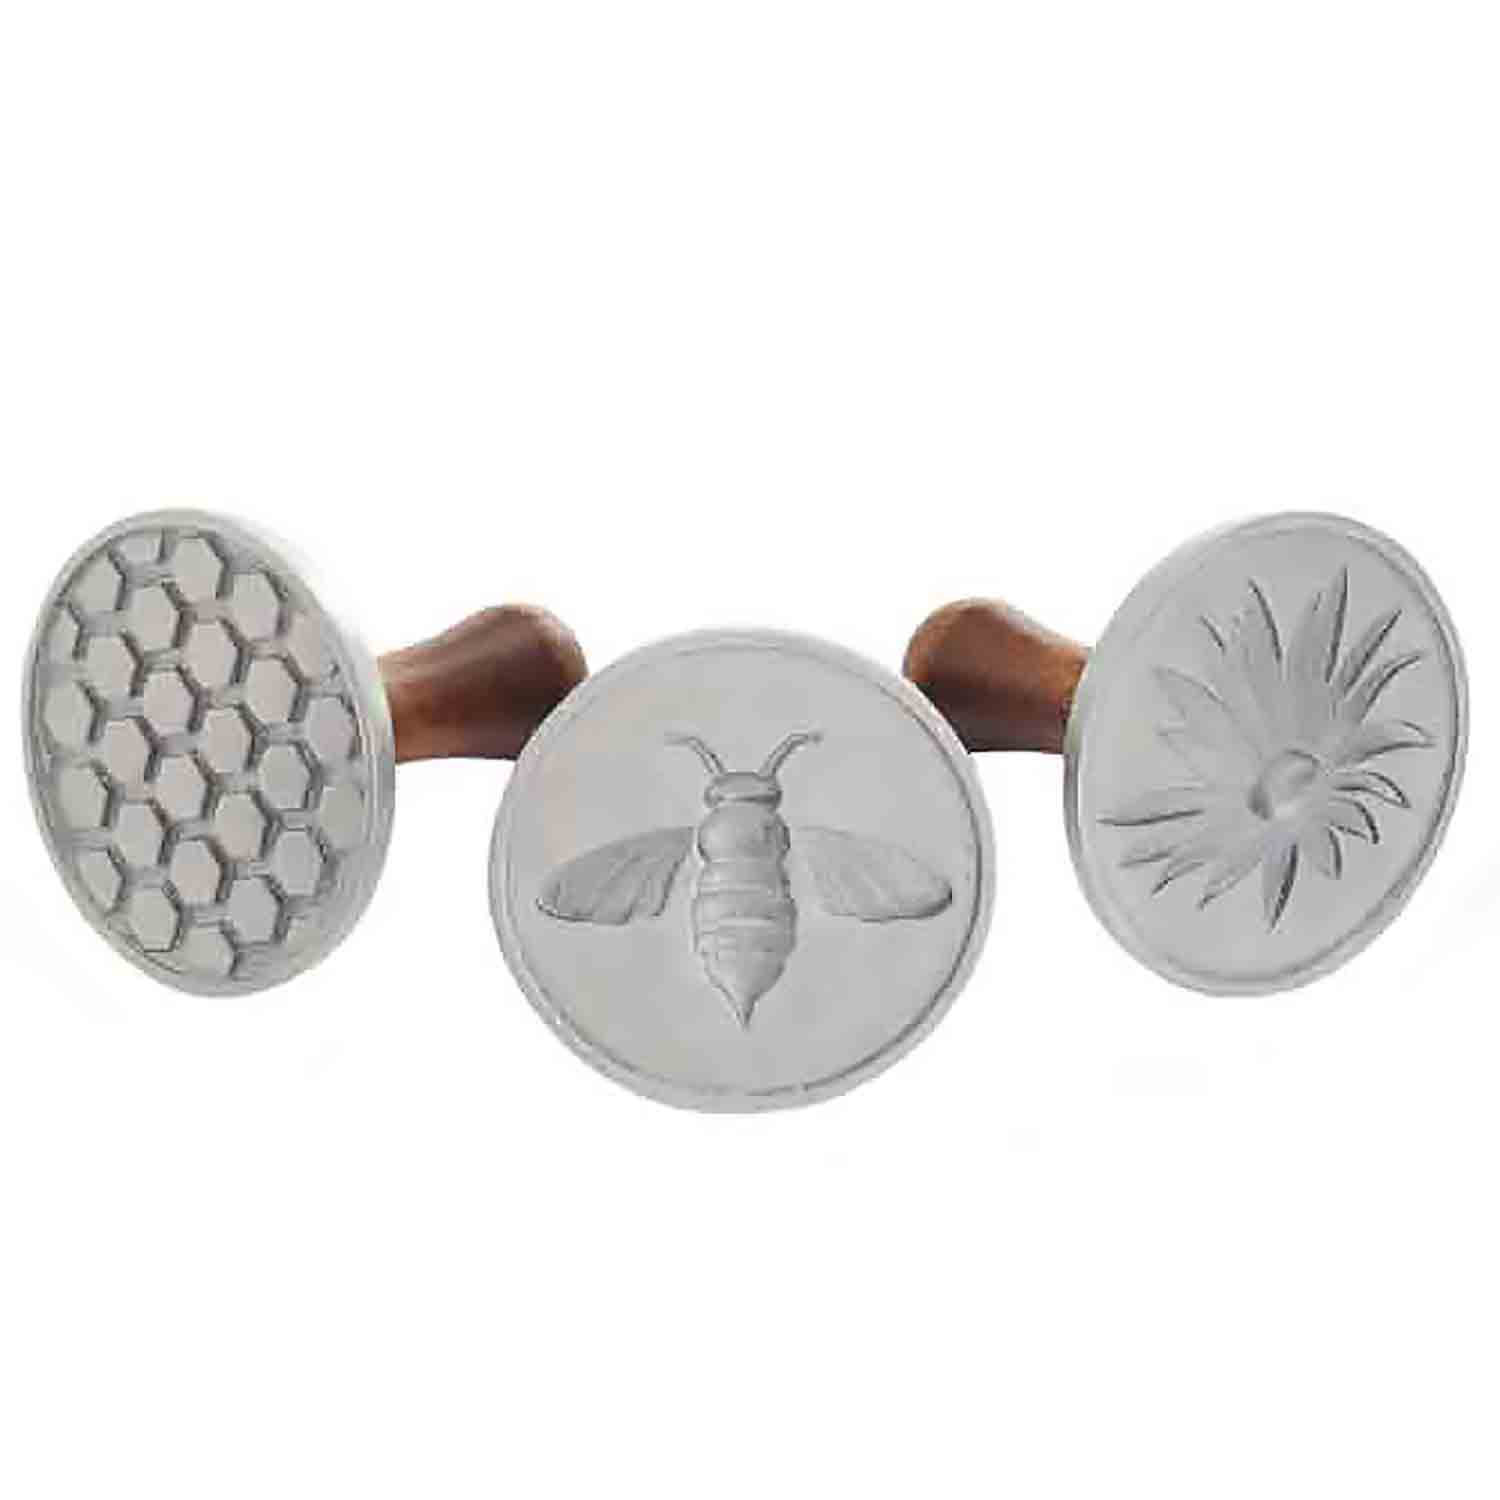 Honeybee Cookie Stamps Set